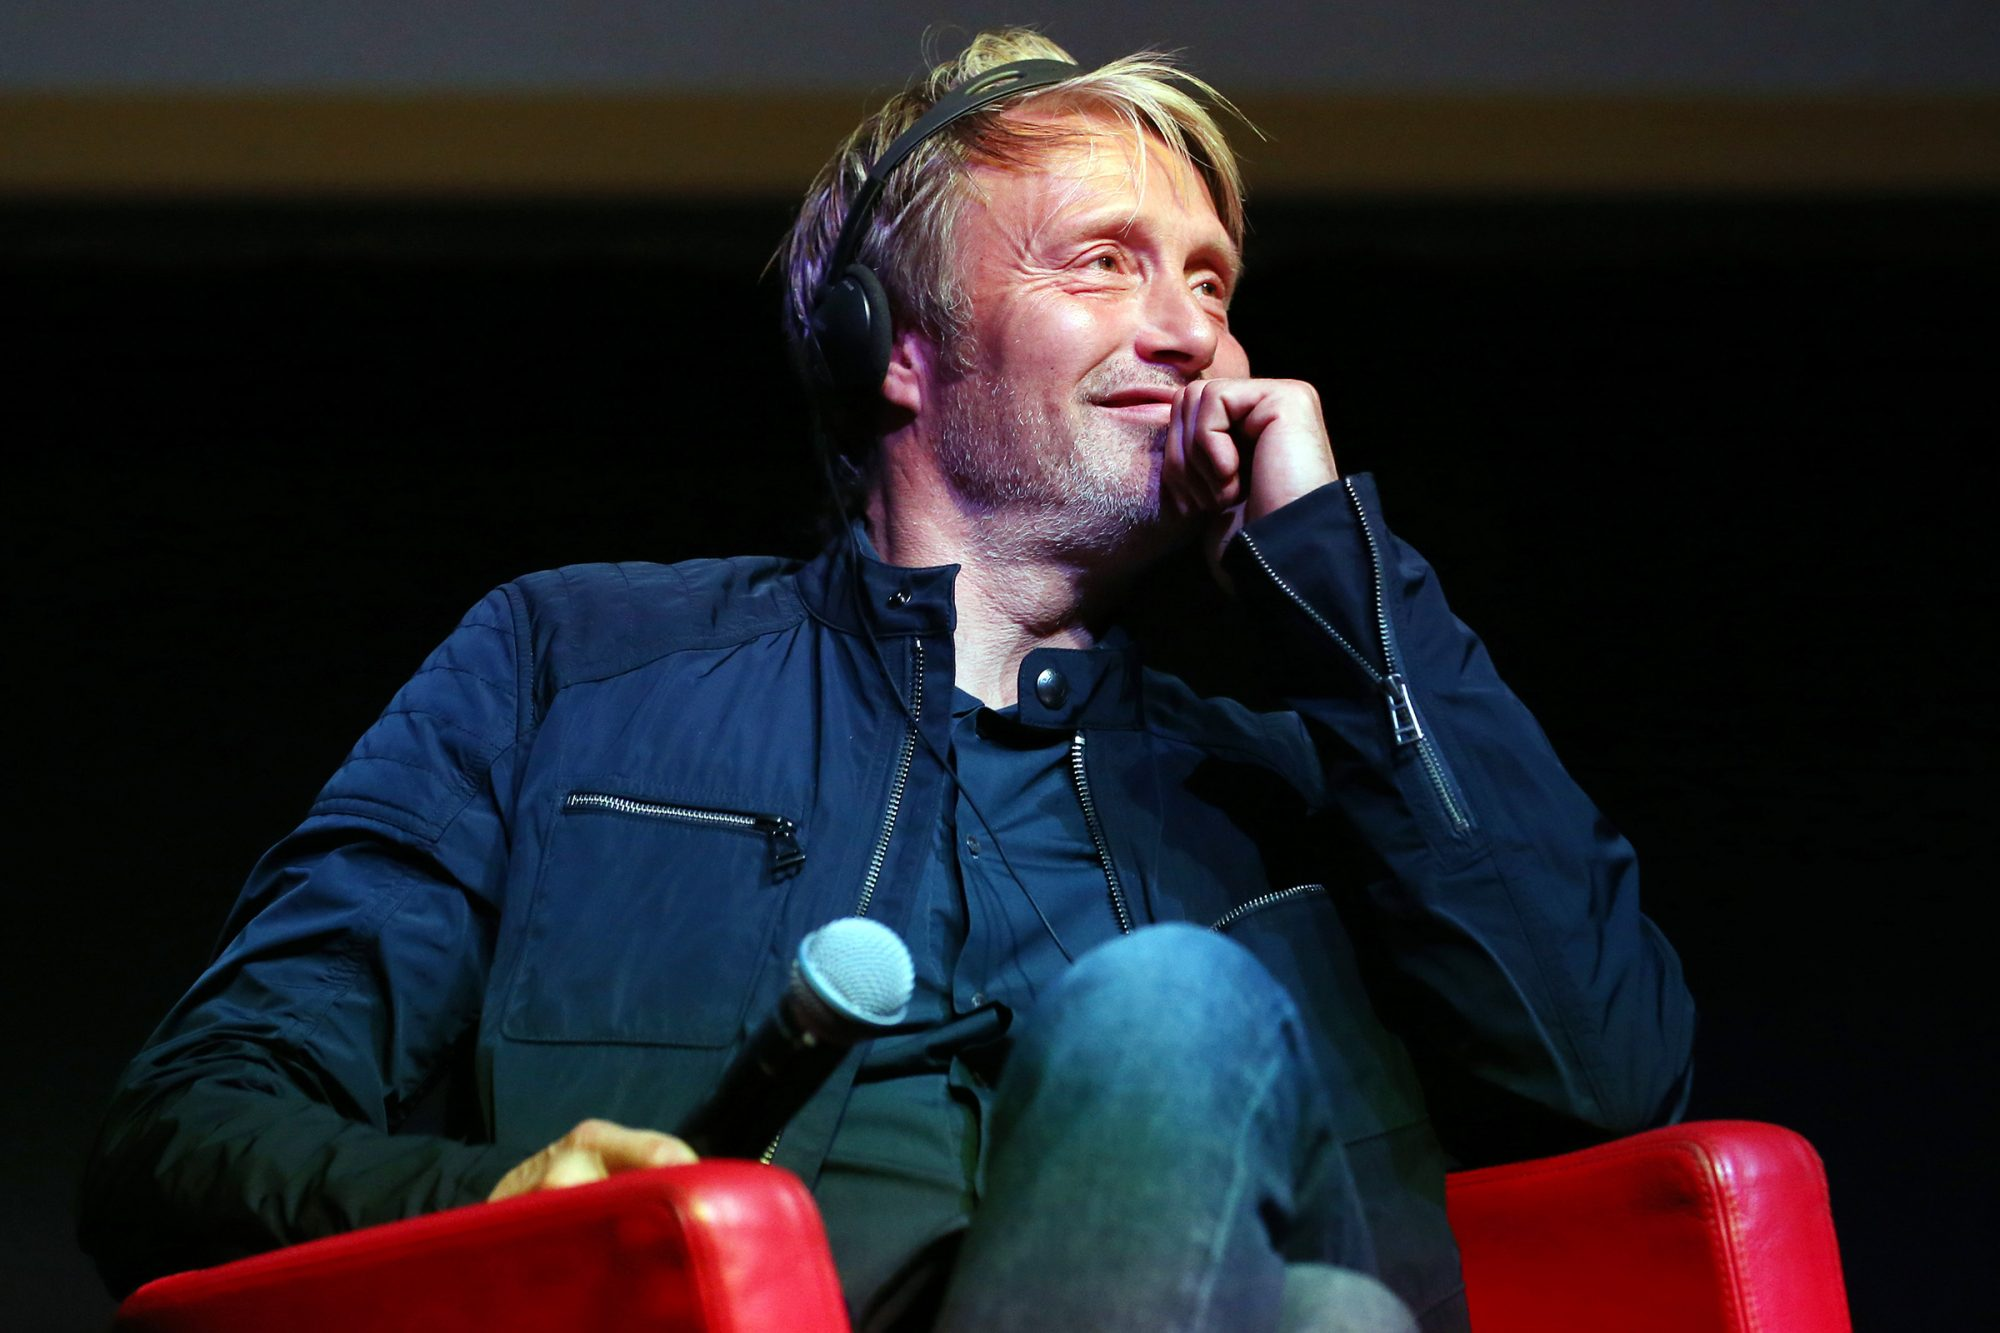 """Mads Mikkelsen attends the """"Druk (Another Round)"""" Press Conference during the 15th Rome Film Festival on October 20, 2020 in Rome, Italy"""